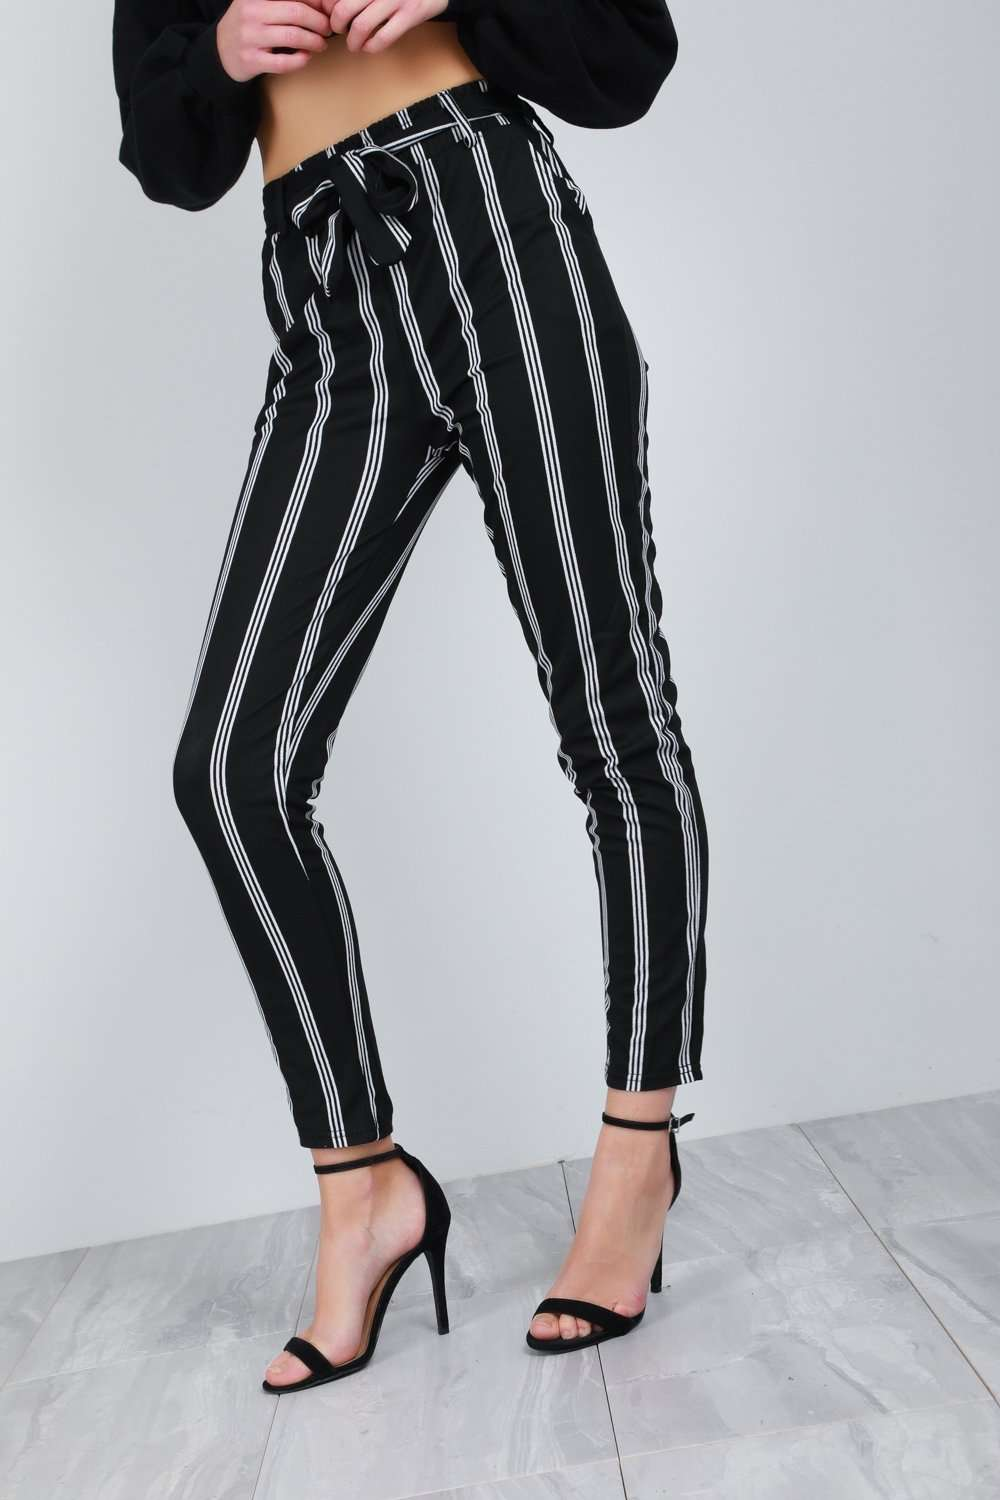 Gina High Waist Monochrome Striped Cigarette Trousers - bejealous-com